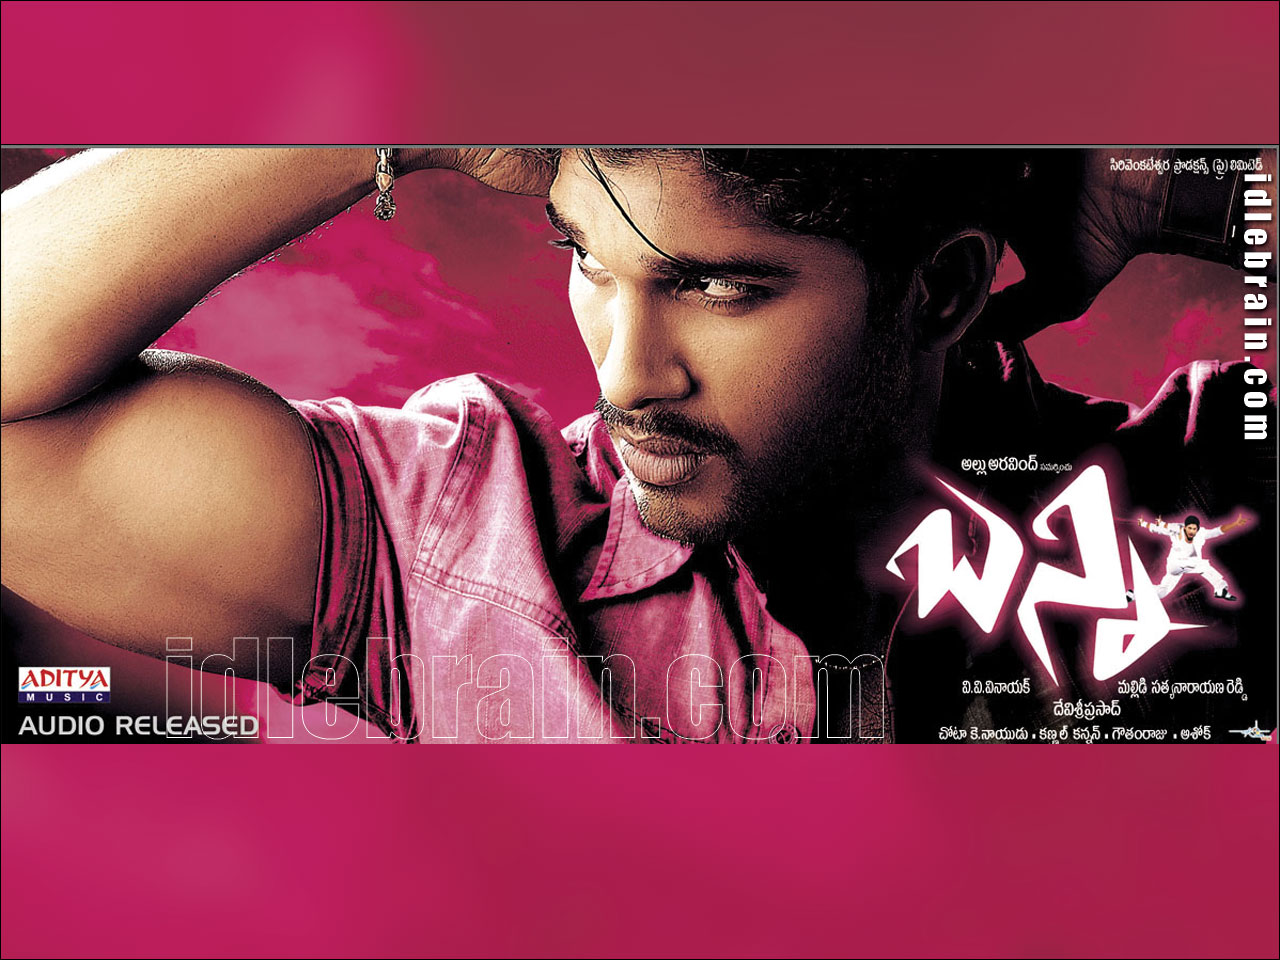 Bunny - Telugu film wallpapers - Allu Arjun